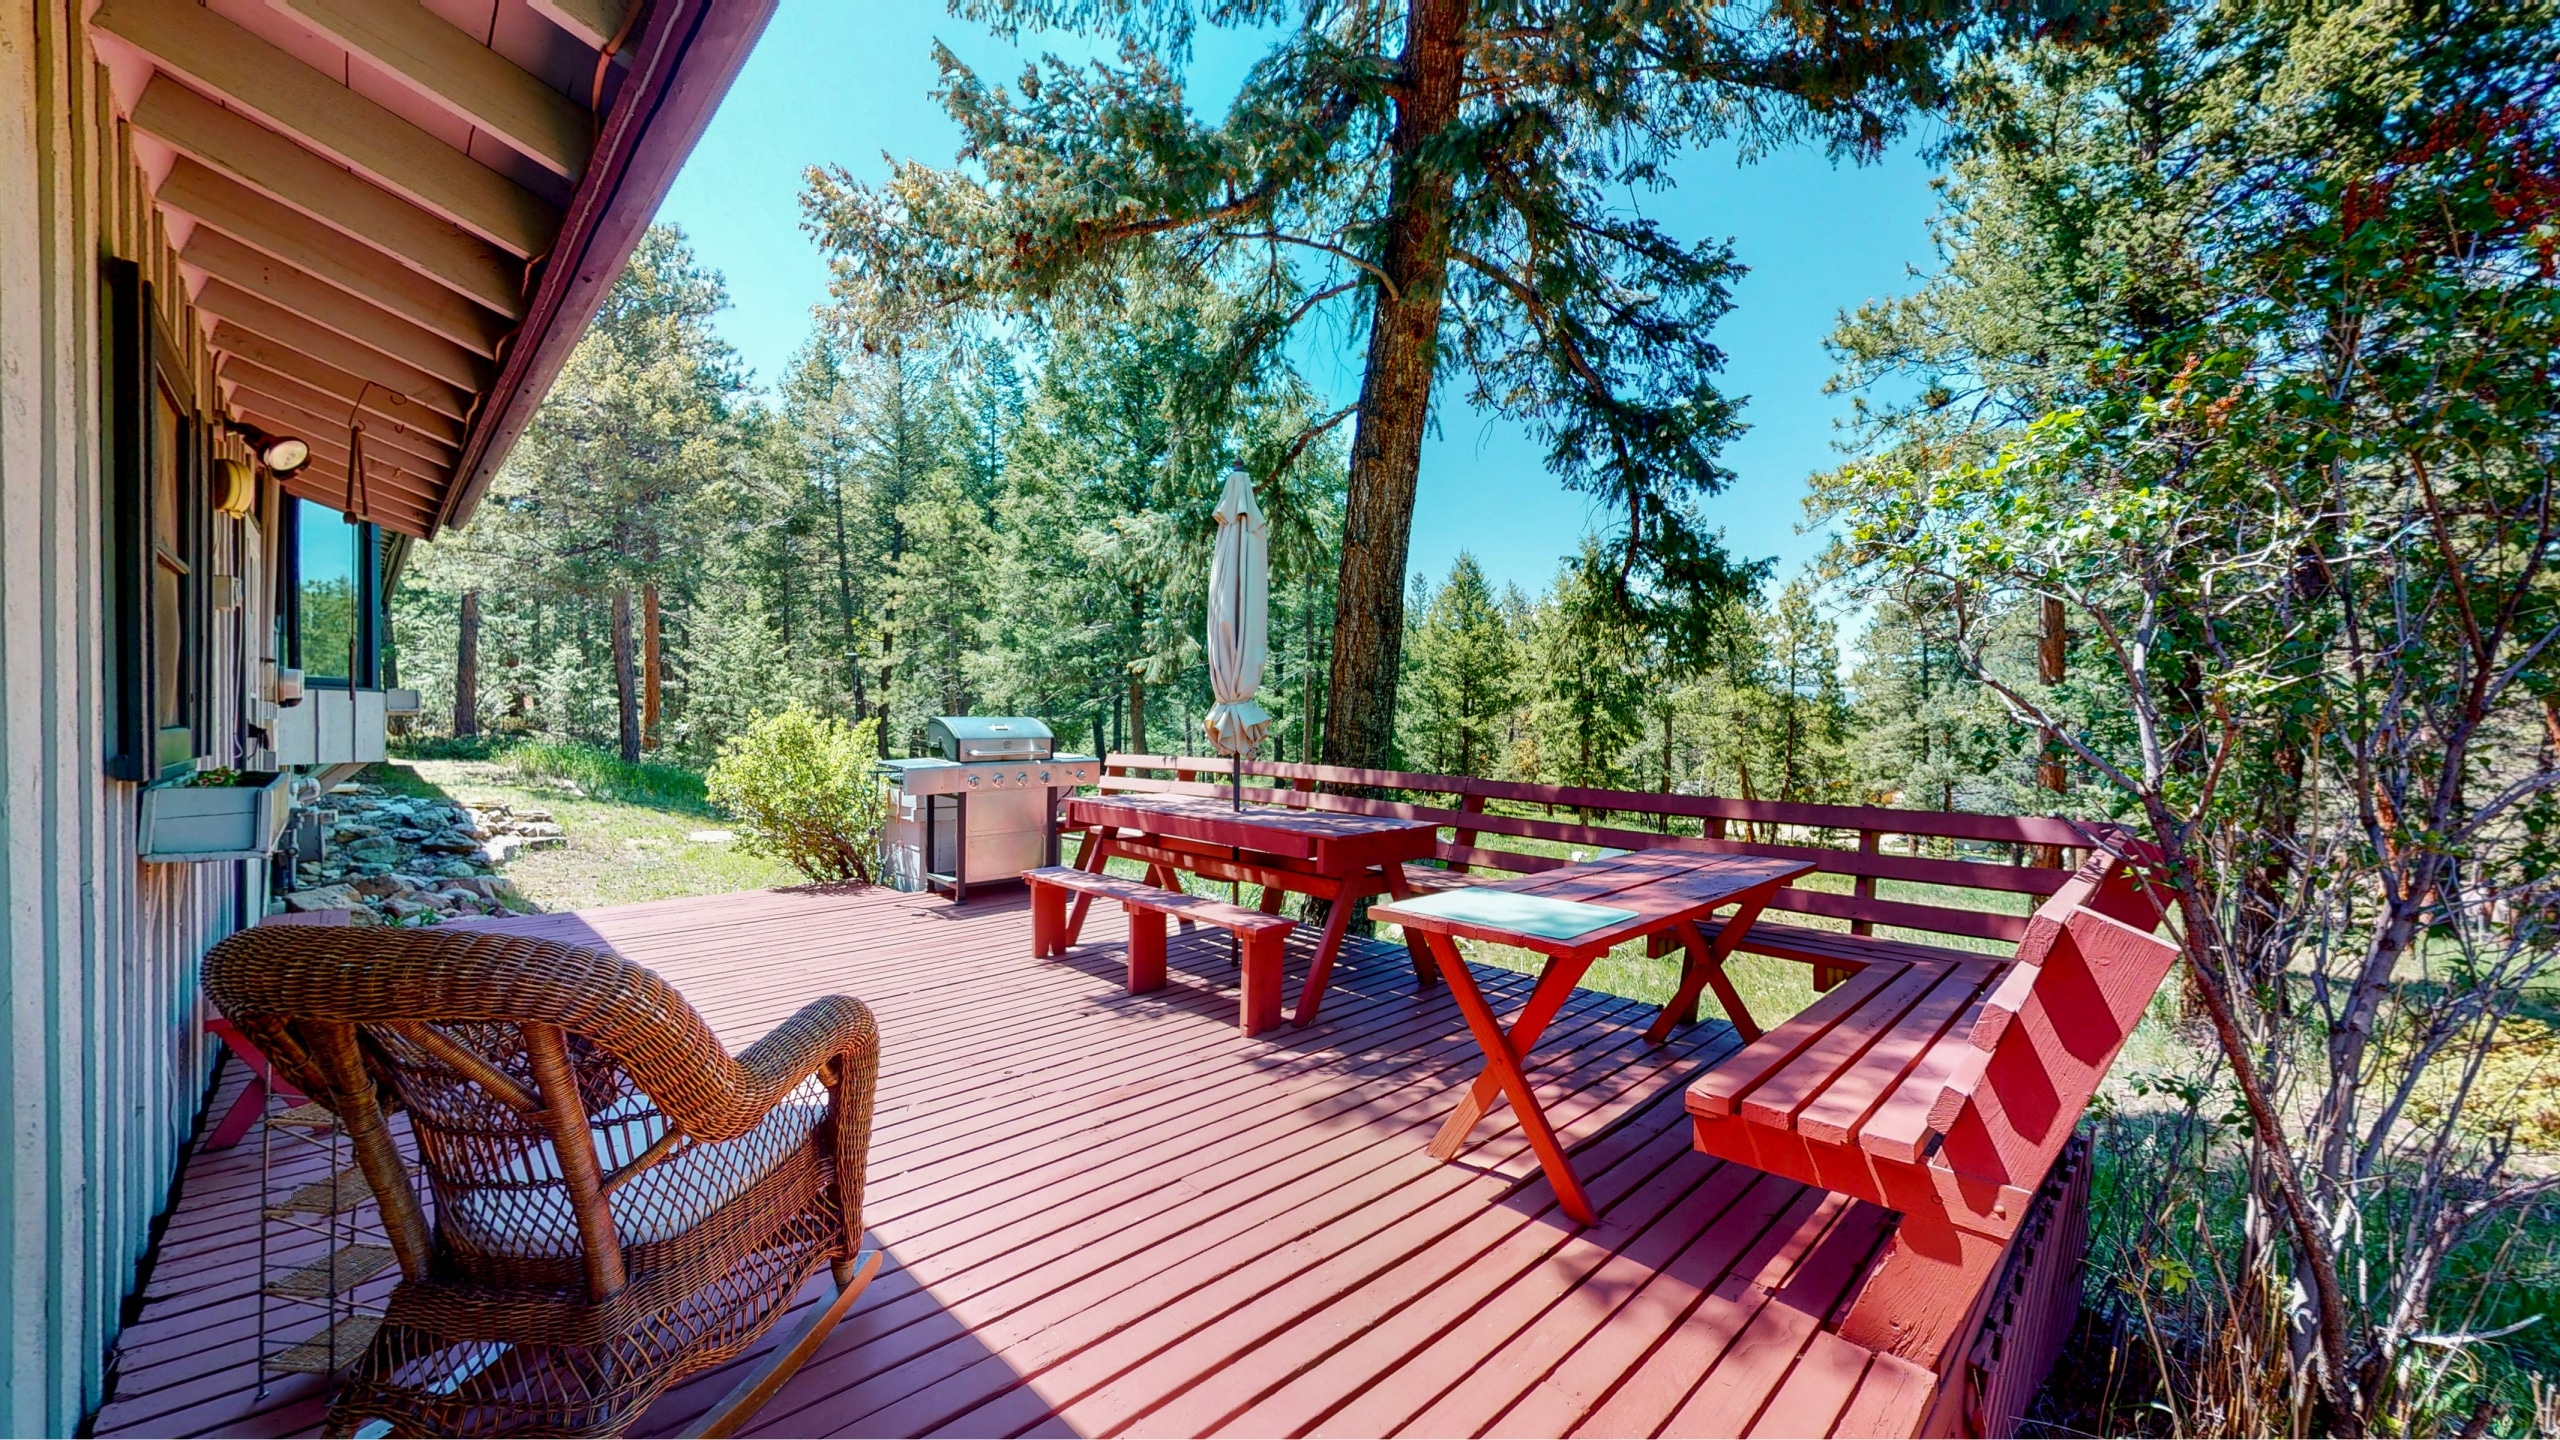 Back deck overlooking a forest of pine trees